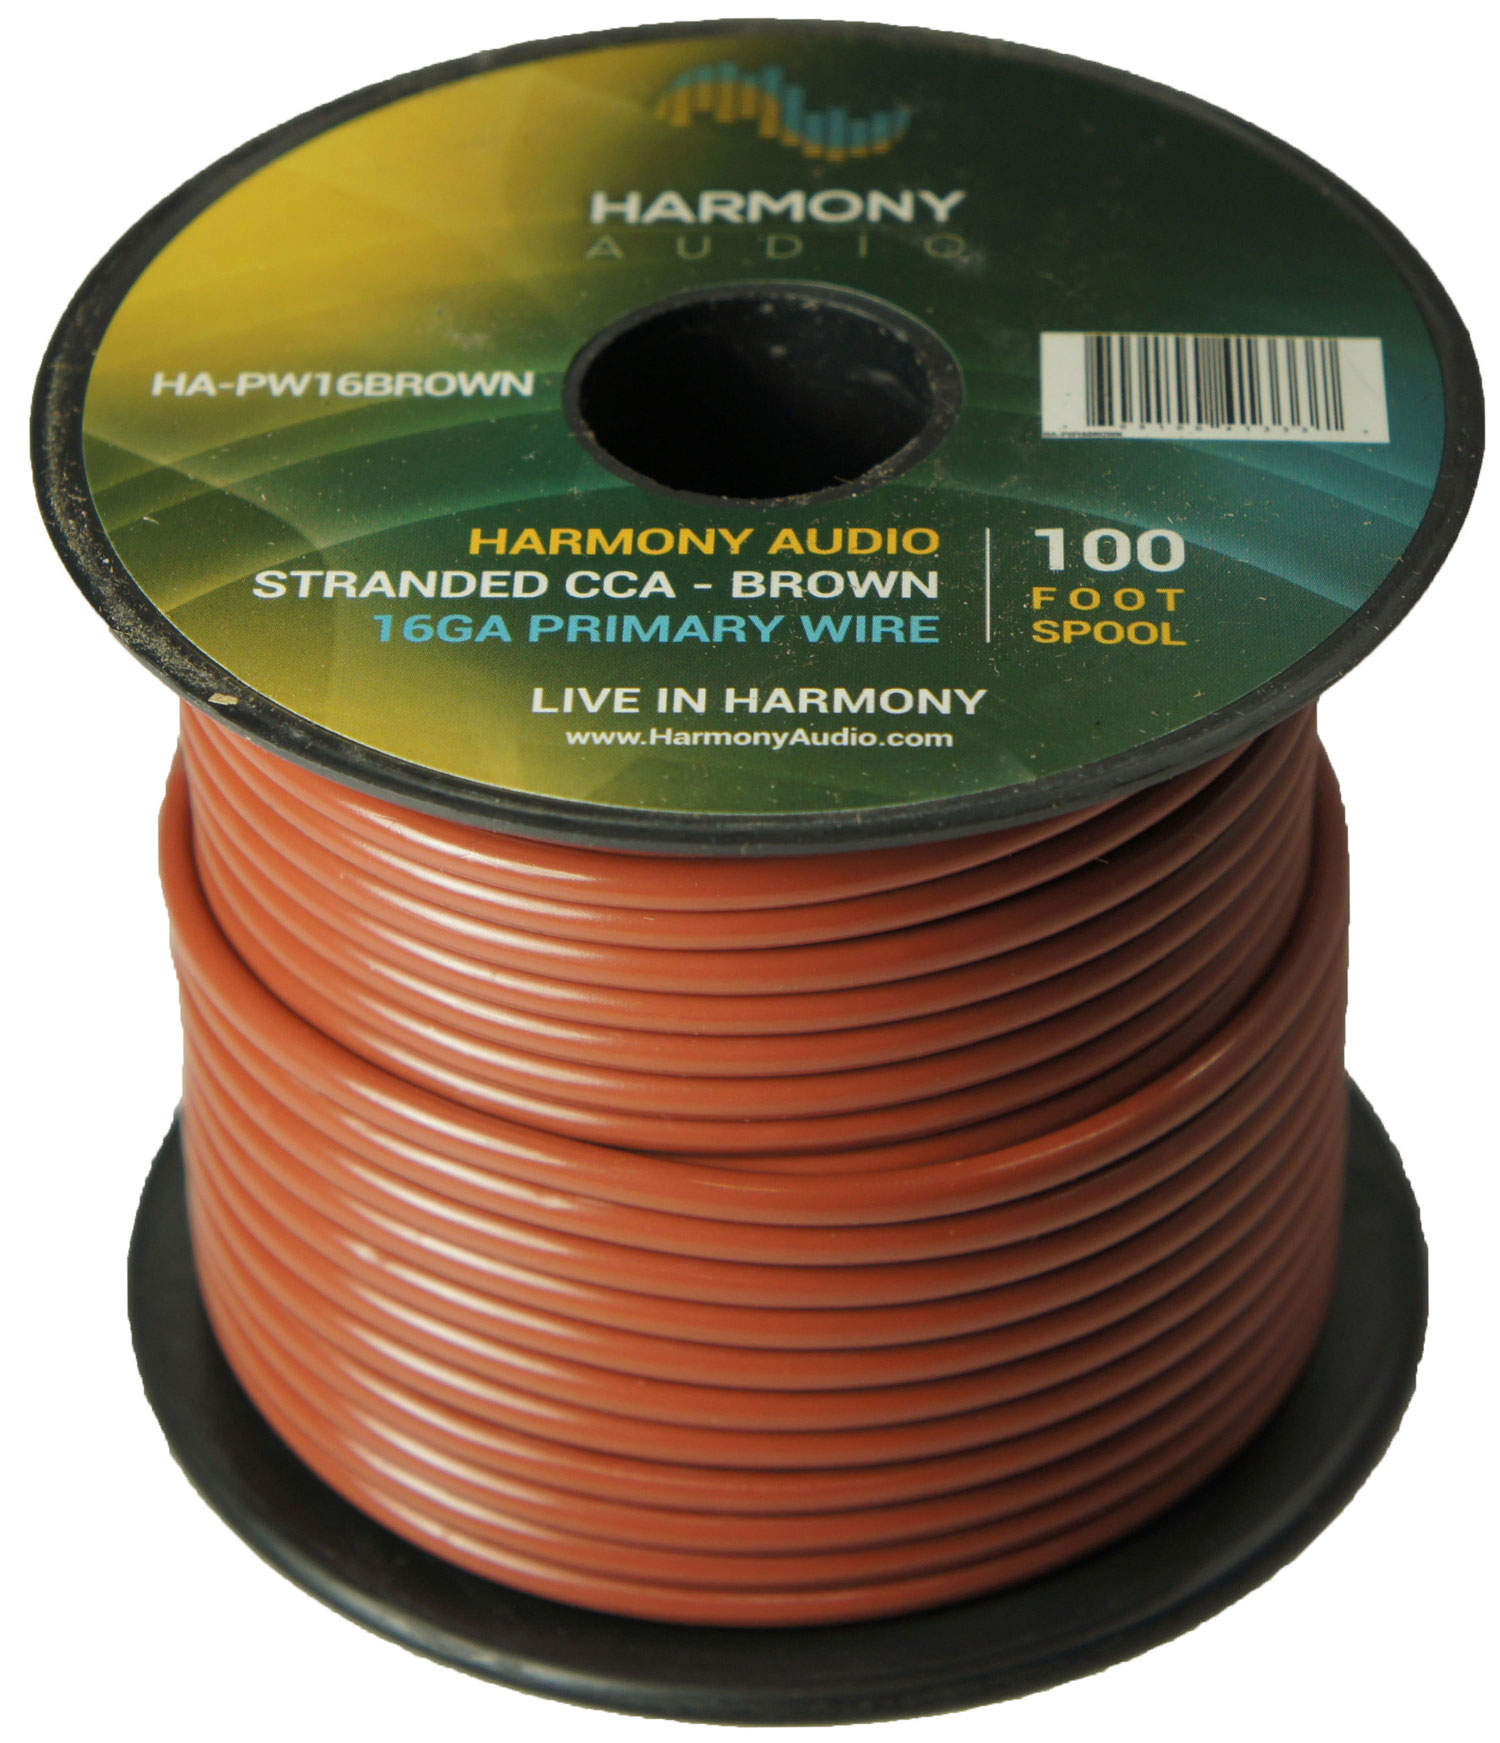 Harmony Audio HA-PW16BROWN Primary Single Conductor 16 Gauge Brown Power or Ground Wire Roll 100 Feet Cable for Car Audio / Trailer / Model Train / Remote